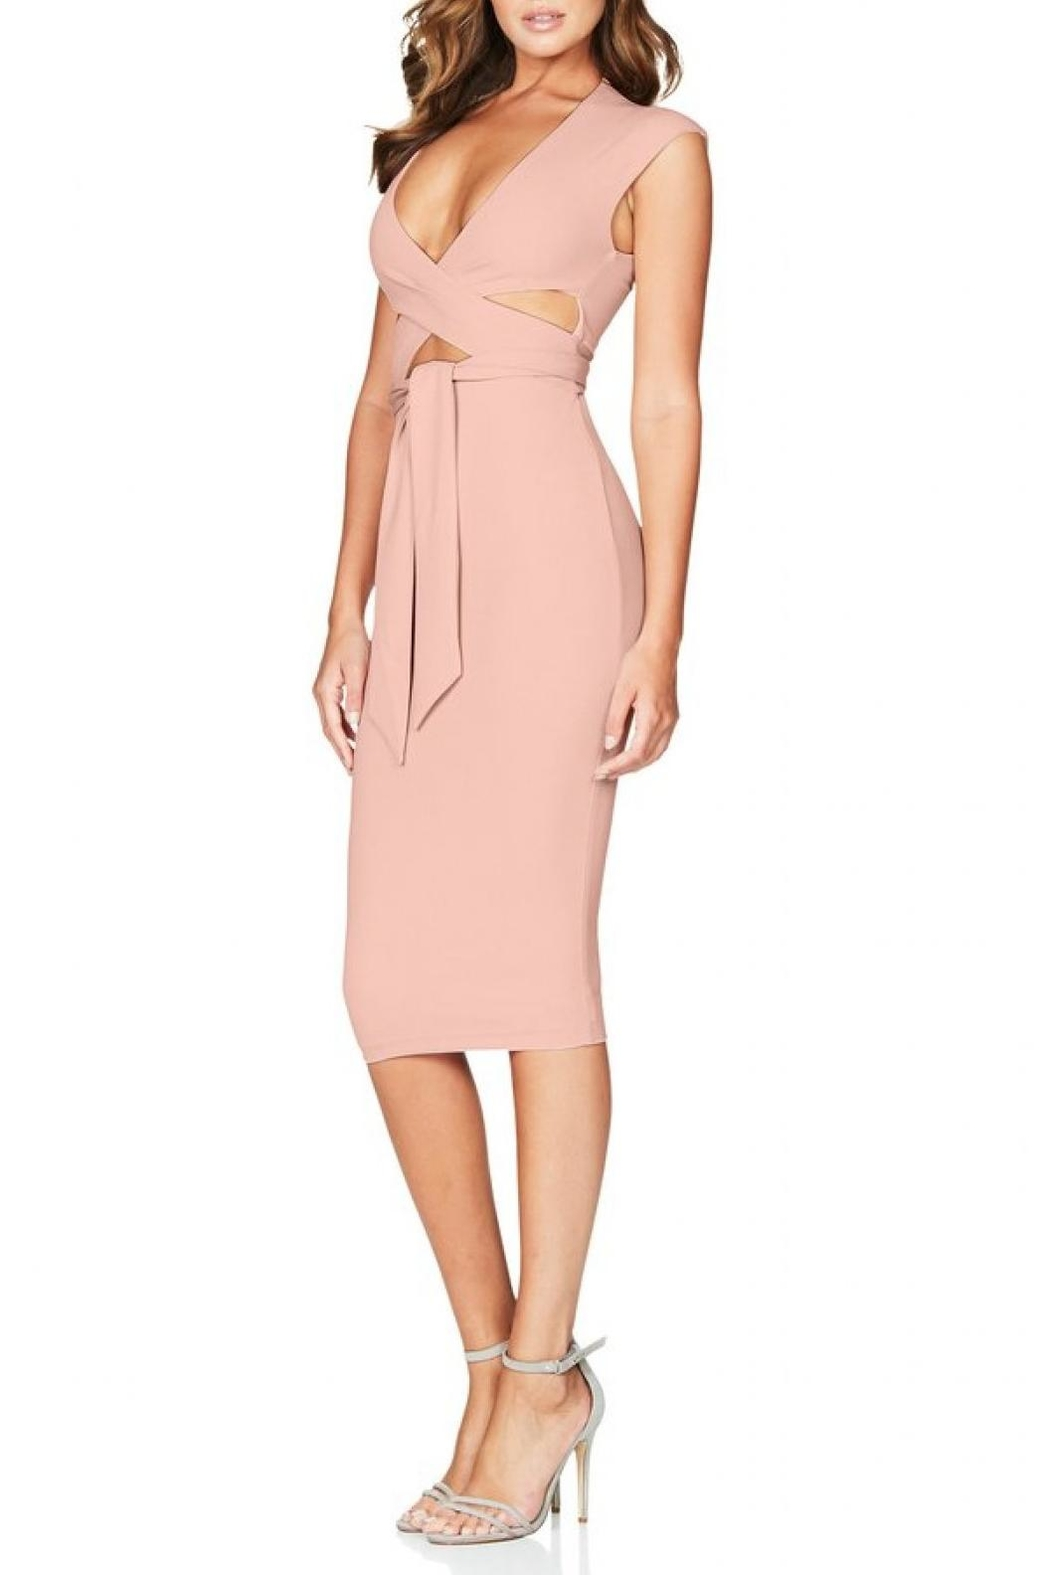 Nookie Miami Midi Dress - Main Image